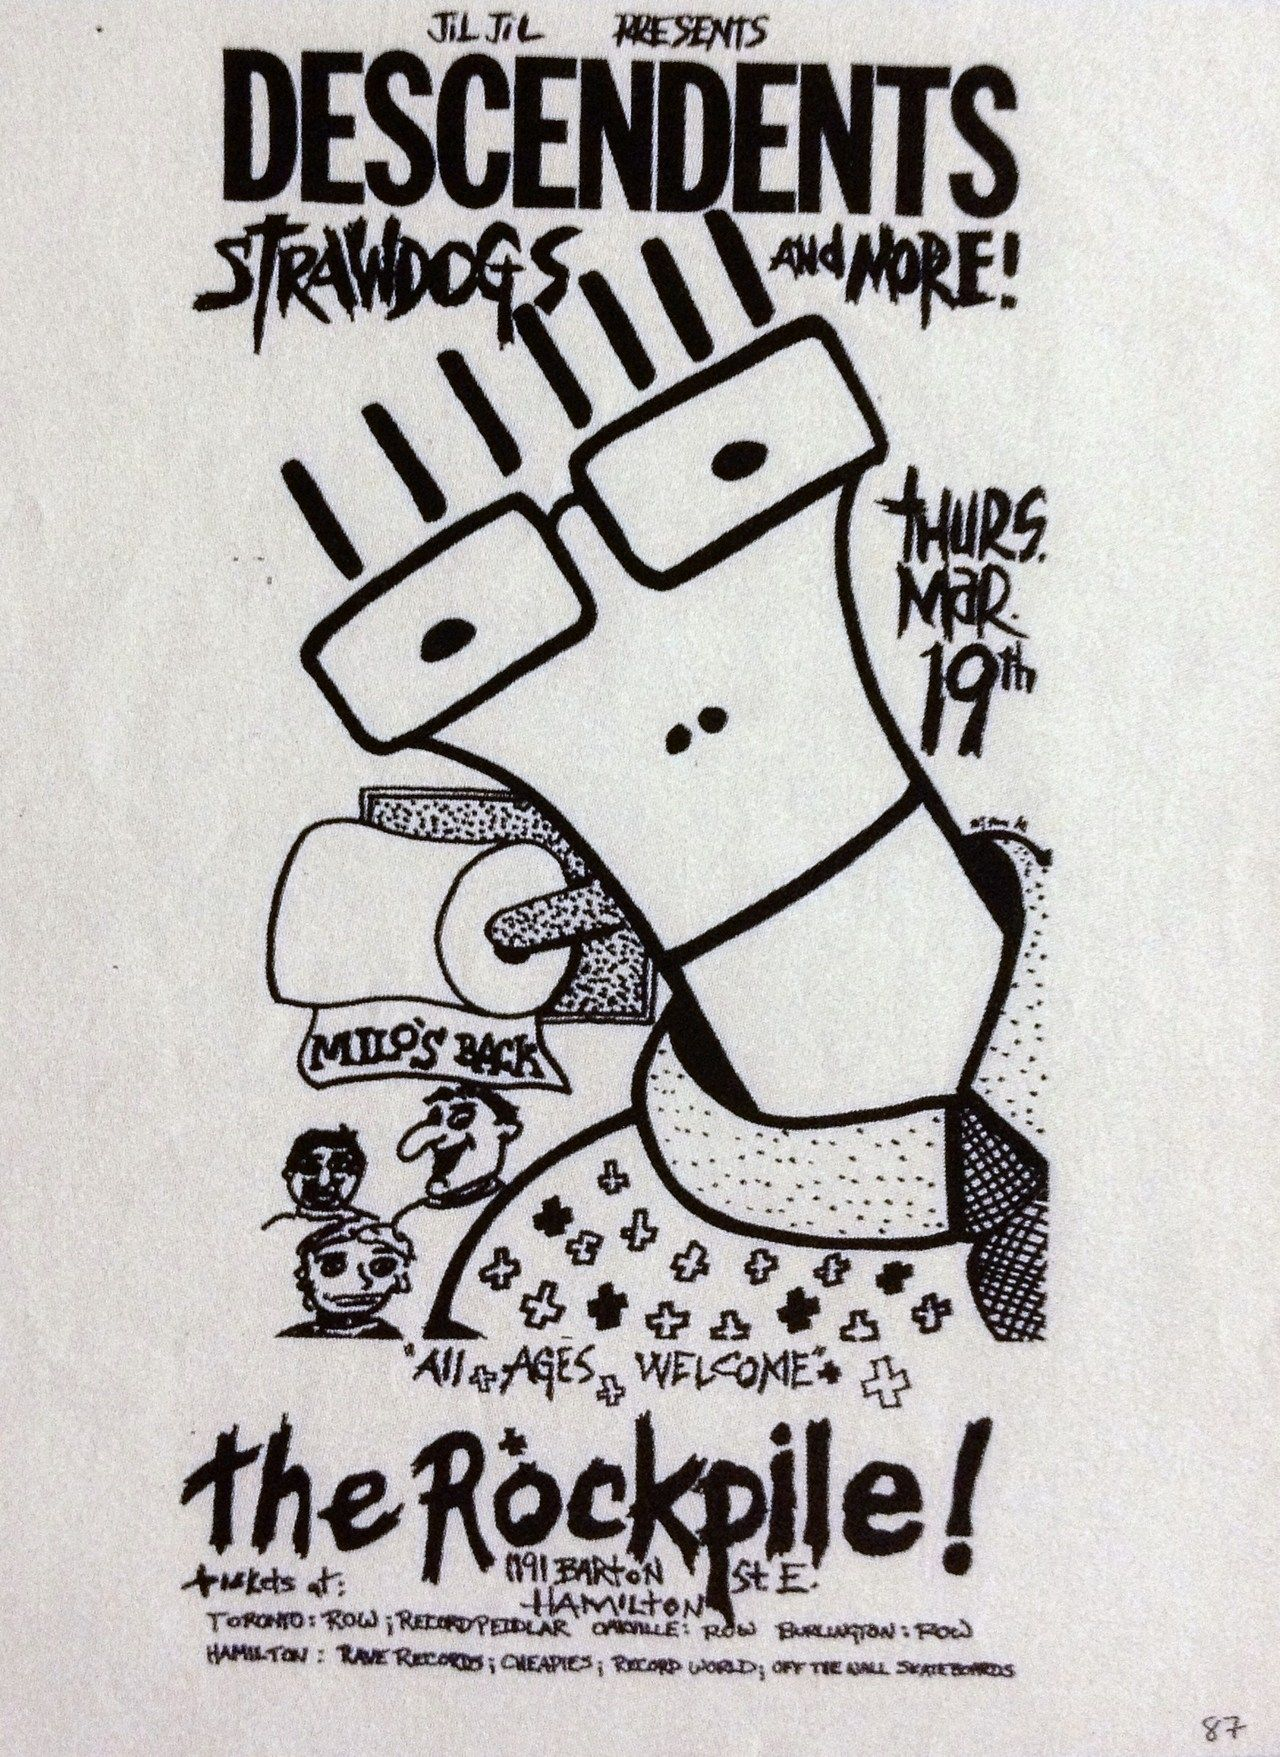 Old punk flyer | Punk flyers/posters | Pinterest | Musik